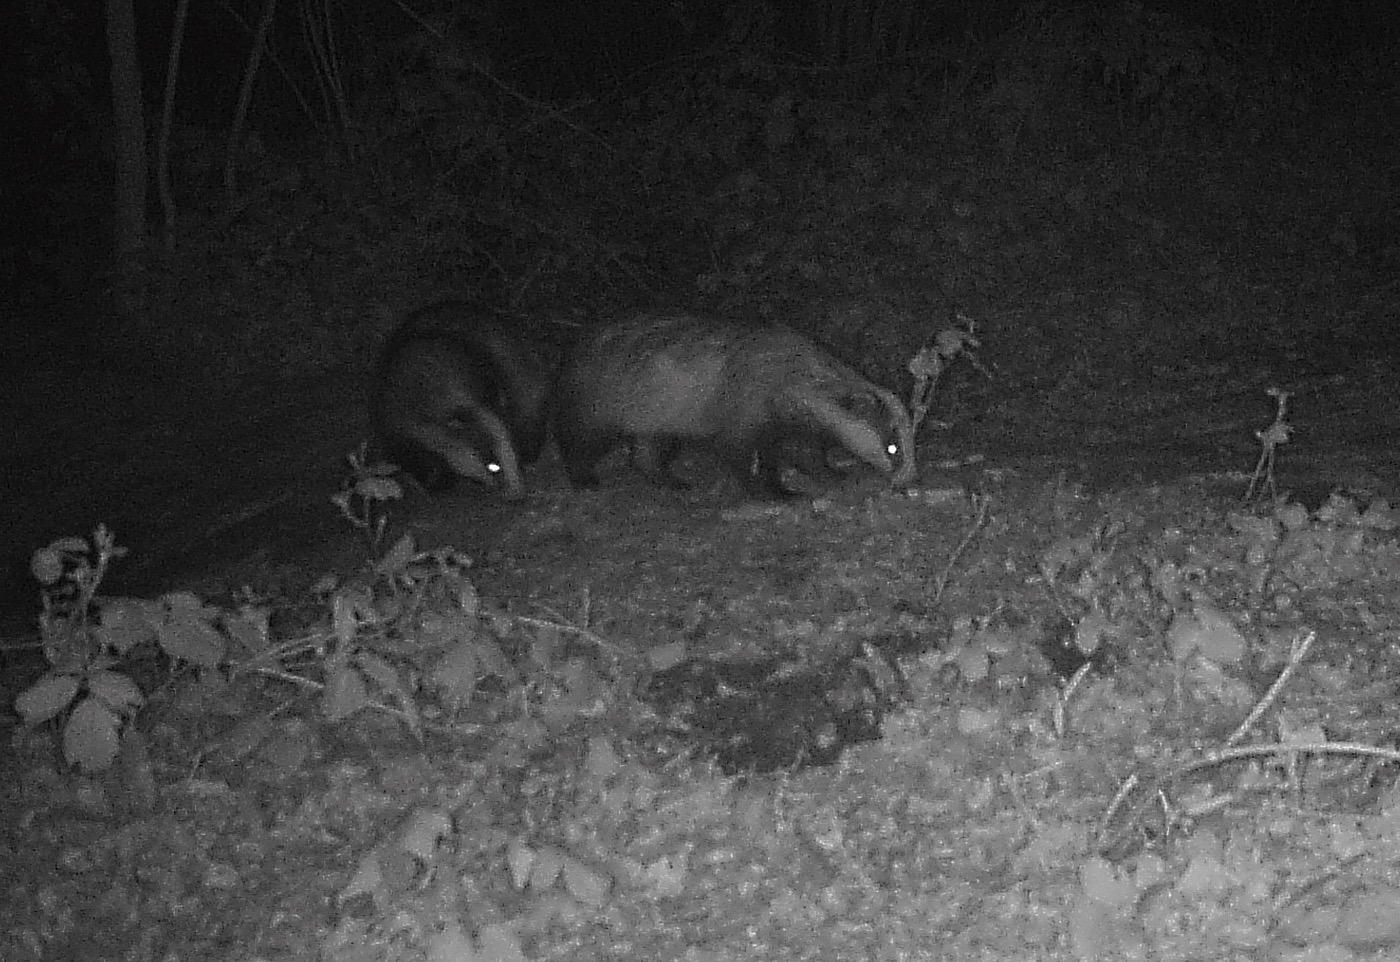 Badgerpair